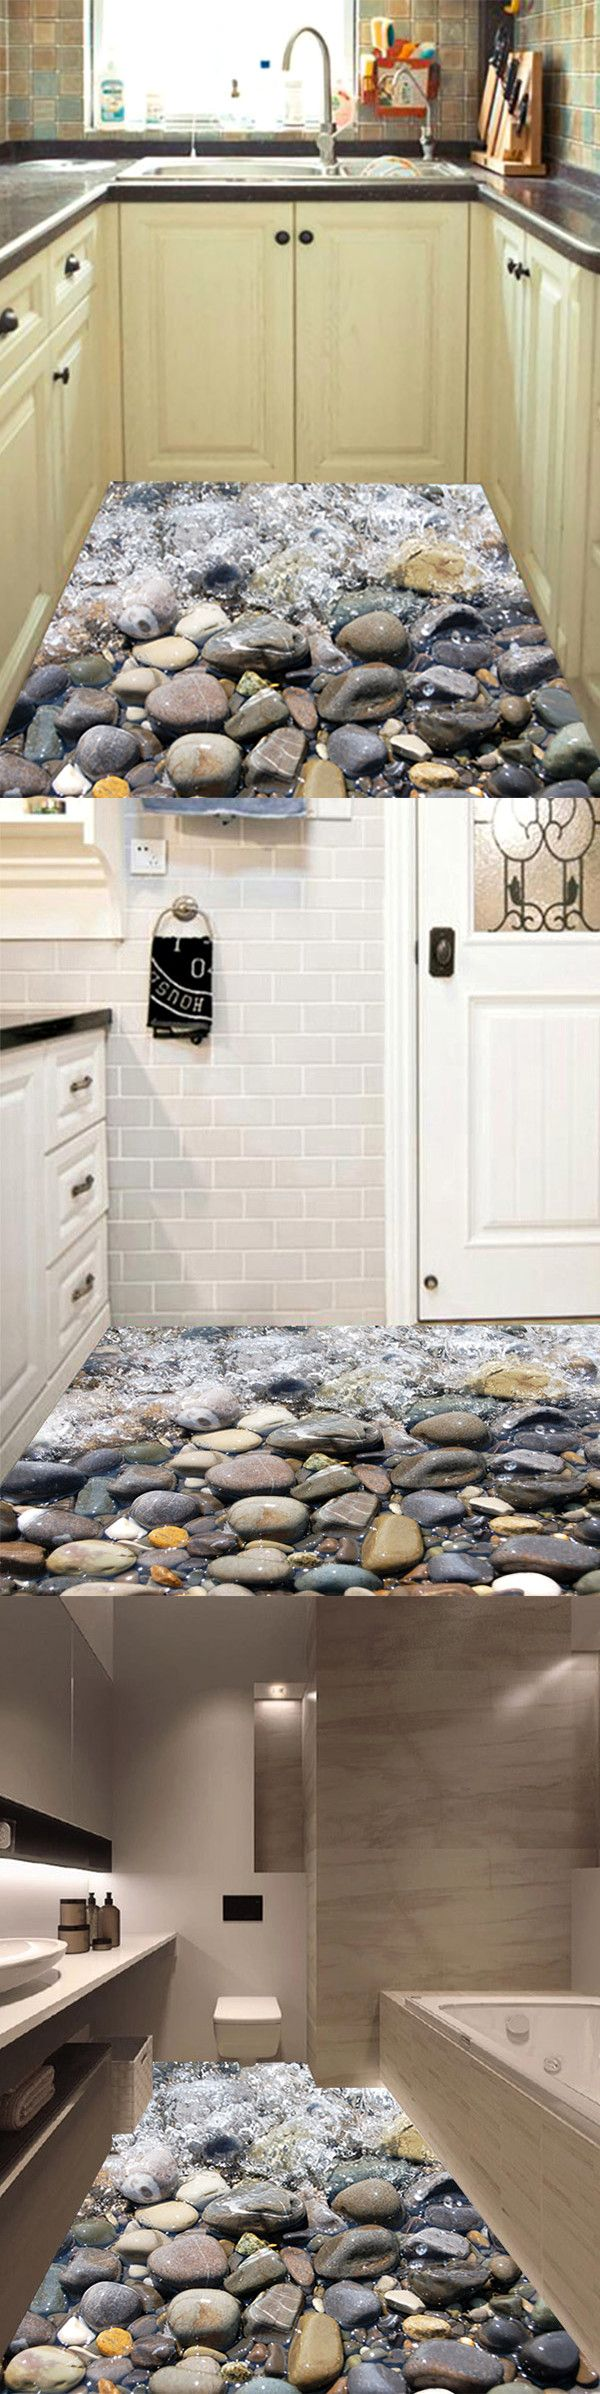 bathroom ideas,bathroom decor,bathroom,bathroom remodel,small bathroom ideas,small bedroom ideas,teen bedroom,girls bedroom ideas,master bedroom decor,boys bedroom ideas,bedroom ideas for teen girls,guest bedroom,minimalist bedroom,grey bedroom,girls bedroom,bedroom ideas master,boho bedroom,kids bedroom ideas at Twinkledeals❀10% Off Promo Code:TD01❀ Invite